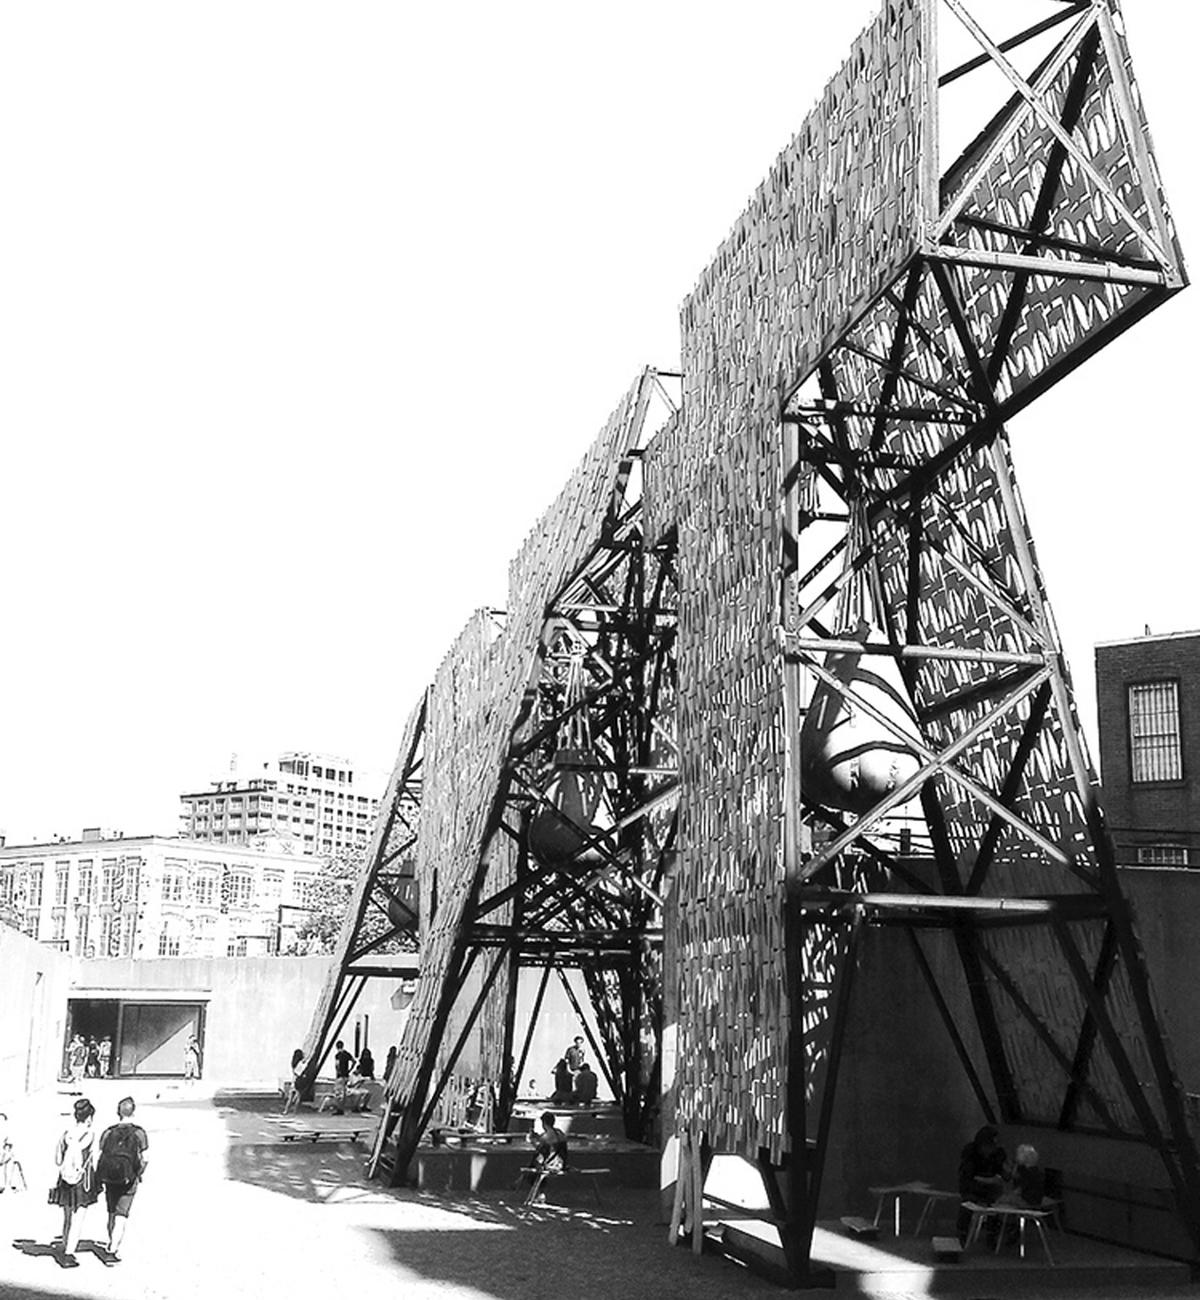 A bridge like metal structure with two people walking side by side.